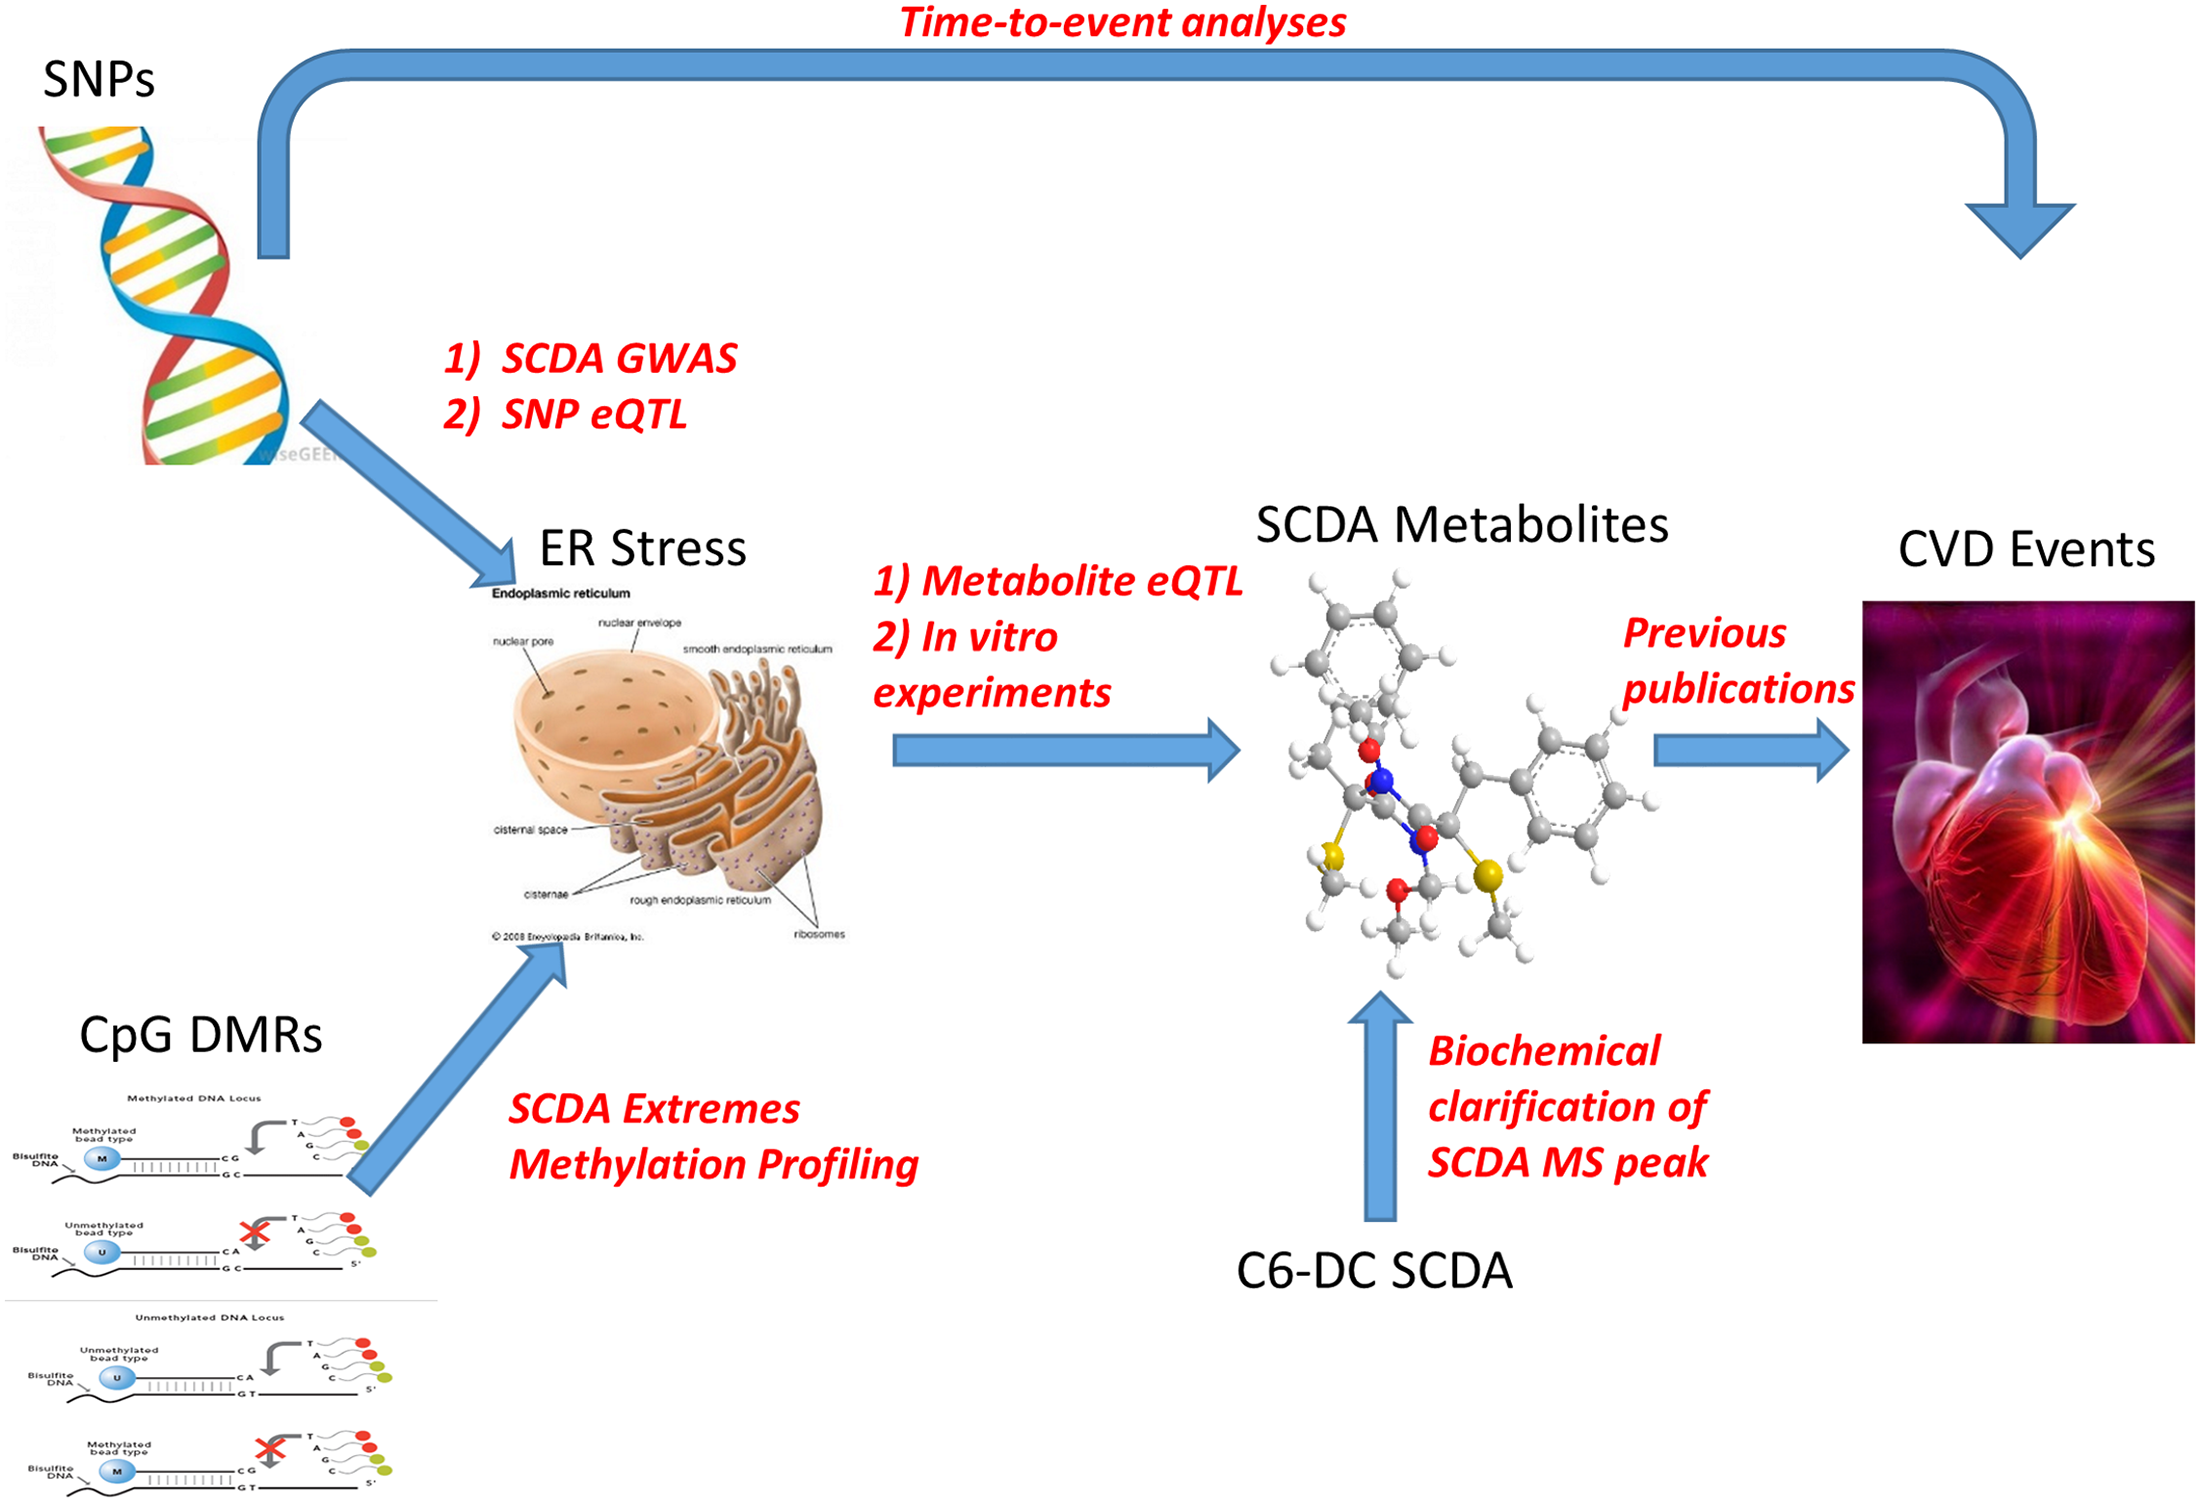 Representation of metabolomics, GWAS, eQTL, and methylation leading to convergence on ER stress as a pathway for CVD event pathogenesis.